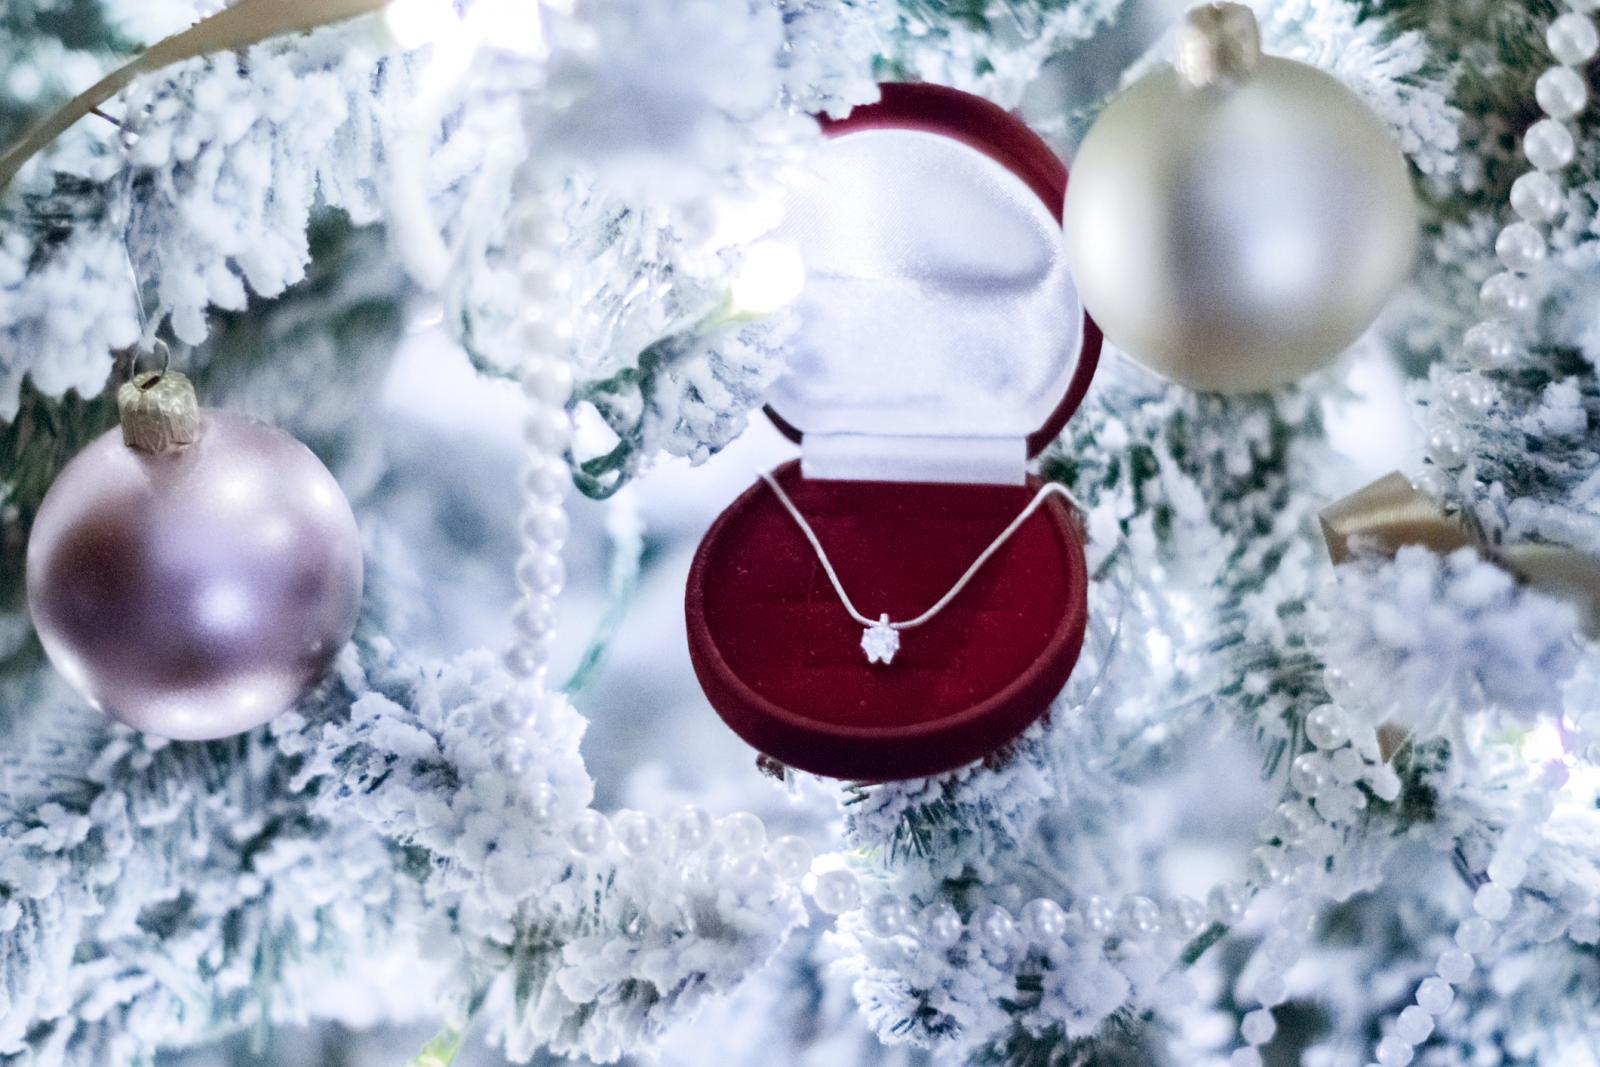 Diamond jewellery for Christmas